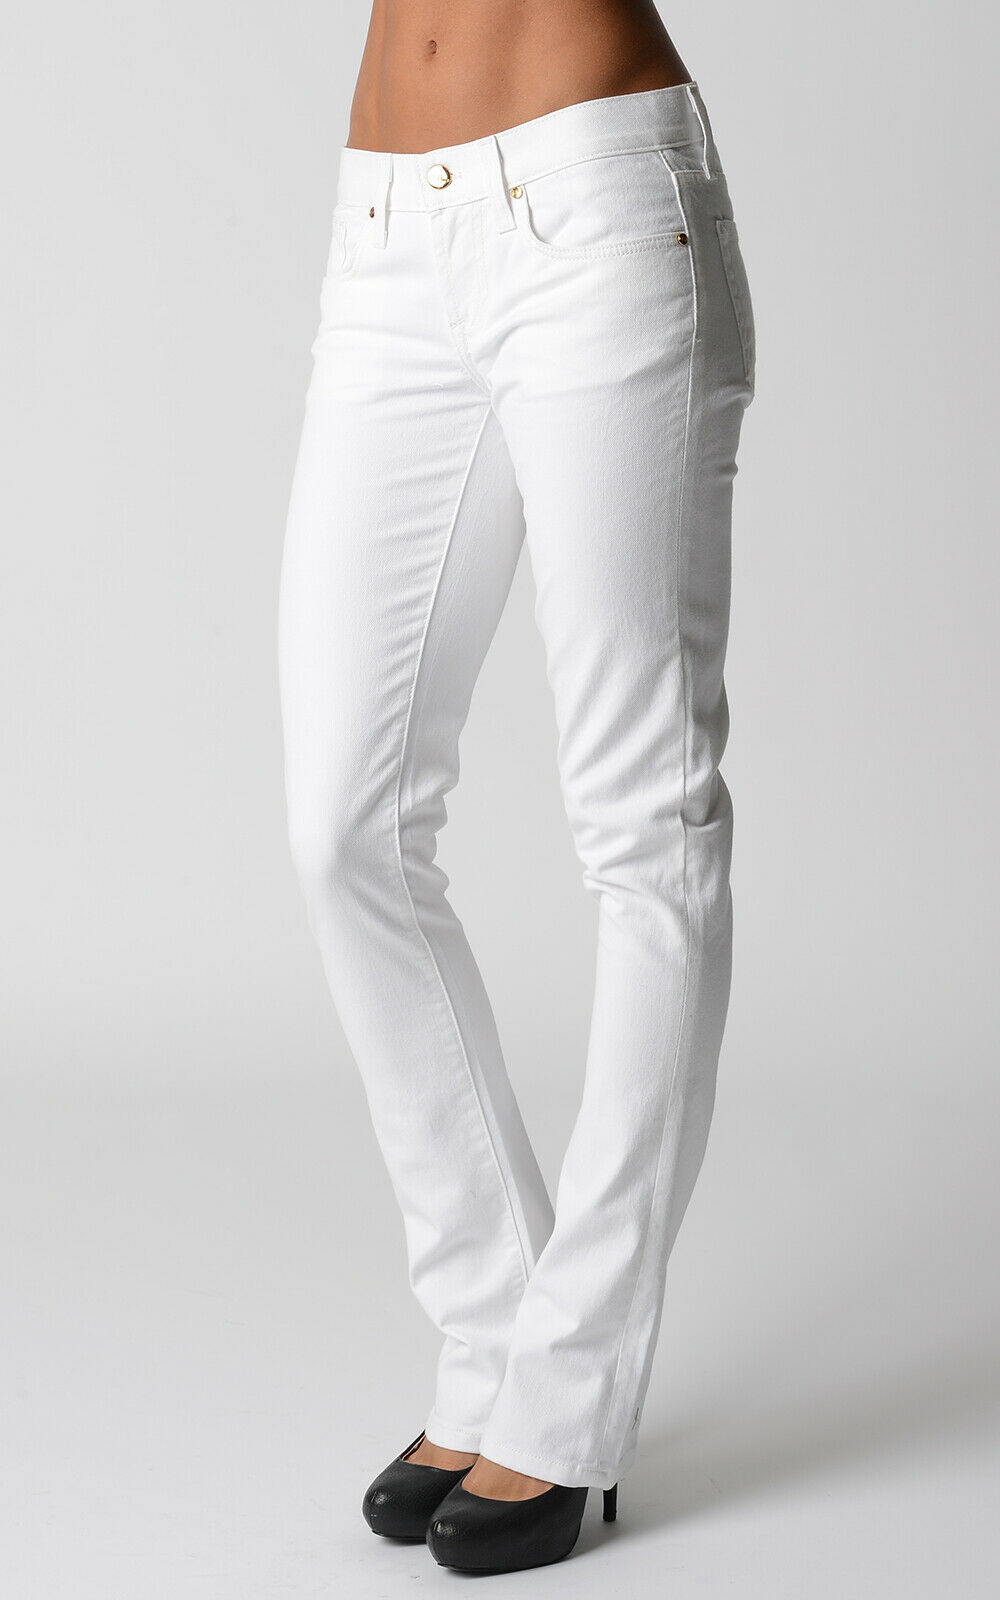 Ralph Lauren 380 Women's Stretch White Slim Fit Jeans Size 30 Gift For Her NWT